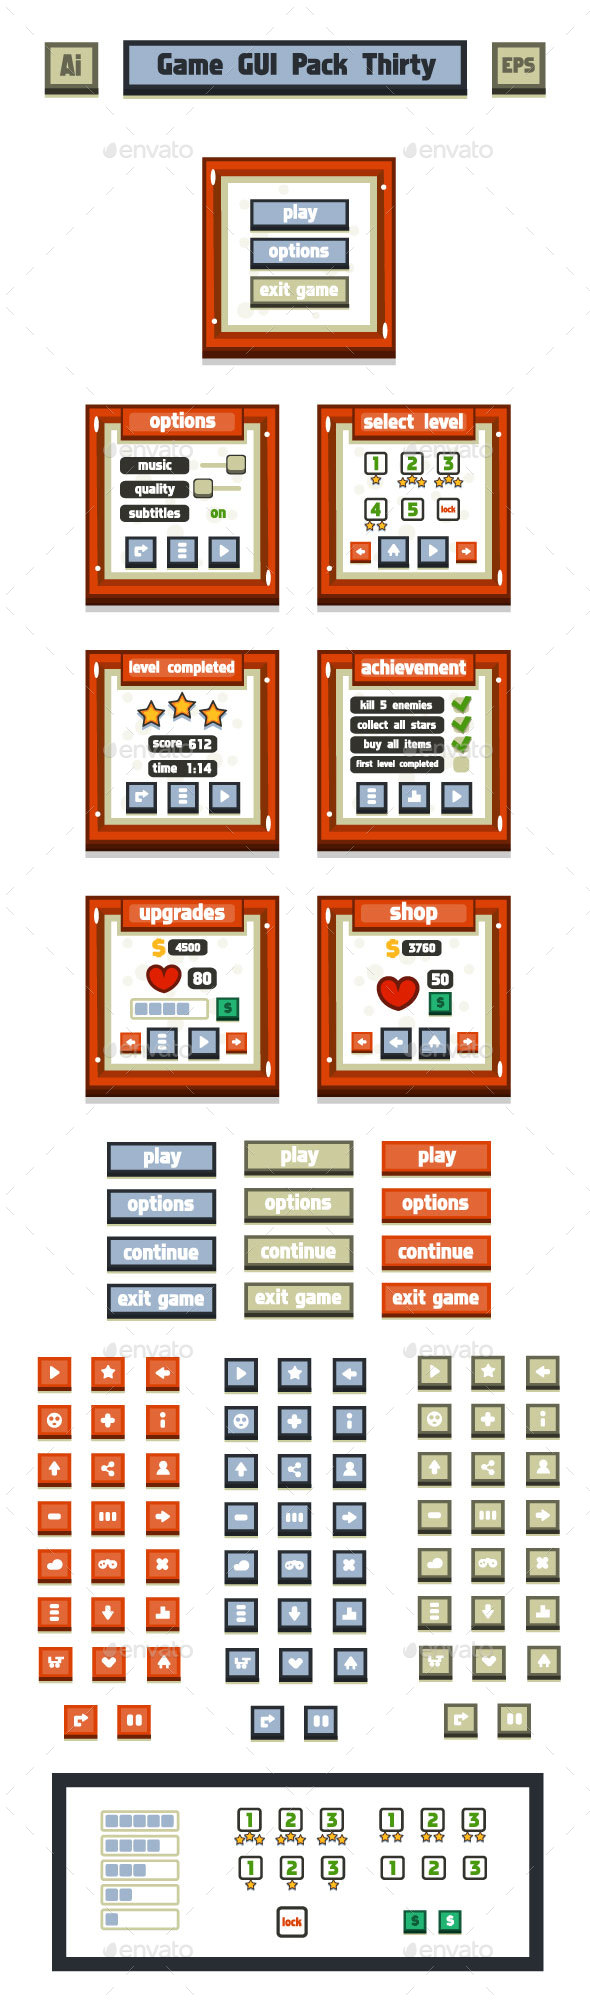 Game GUI Pack Thirty (User Interfaces)